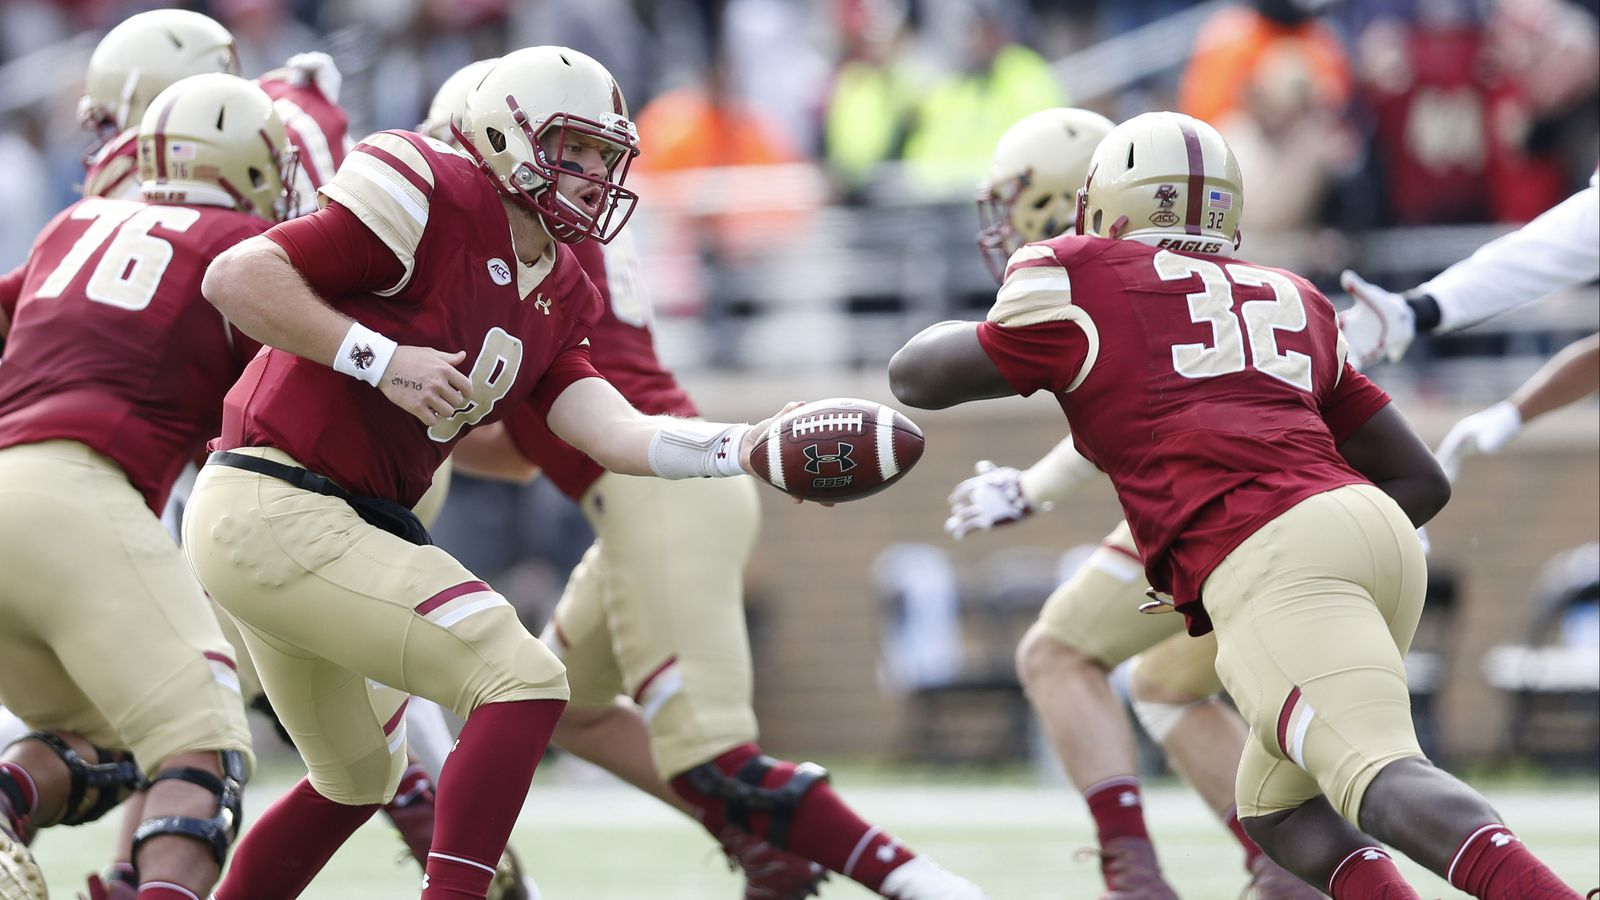 Boston College Eagles Football Schedule Stats History Trivia and more